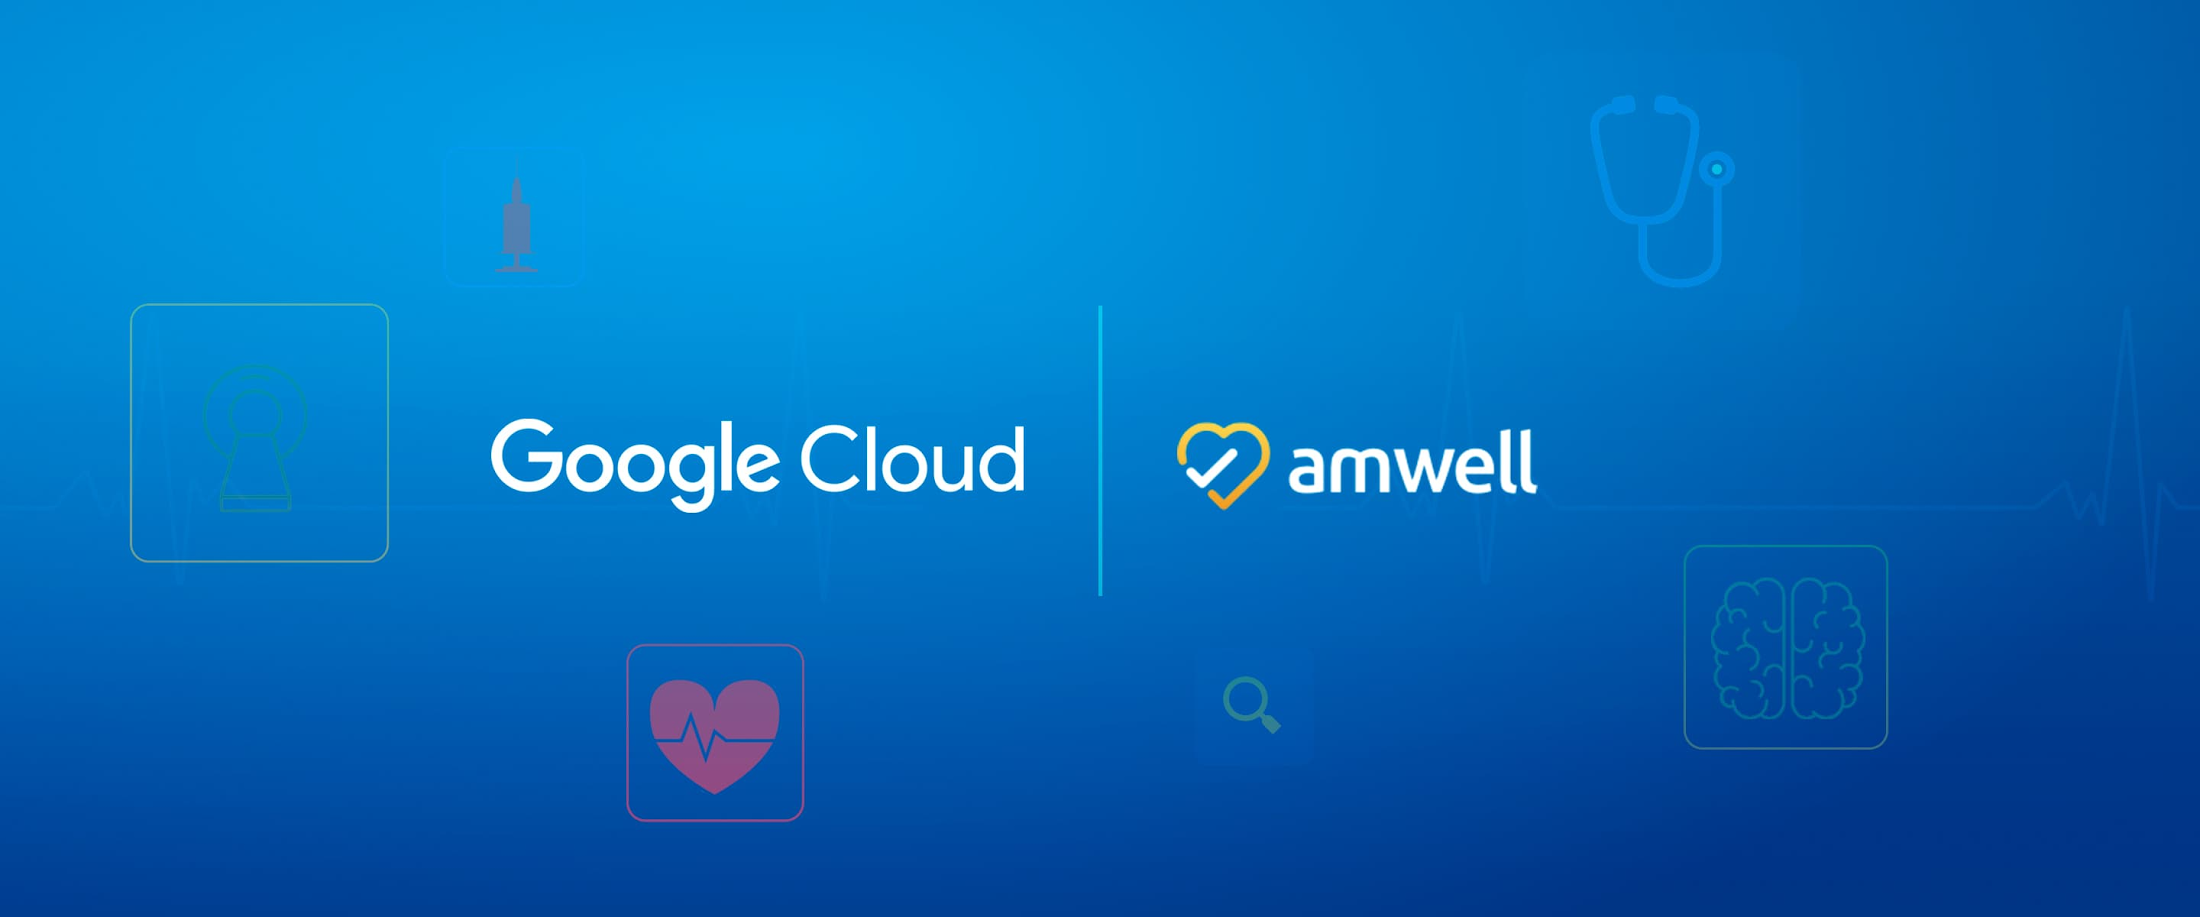 Google Cloud partners with Amwell to advance telehealth